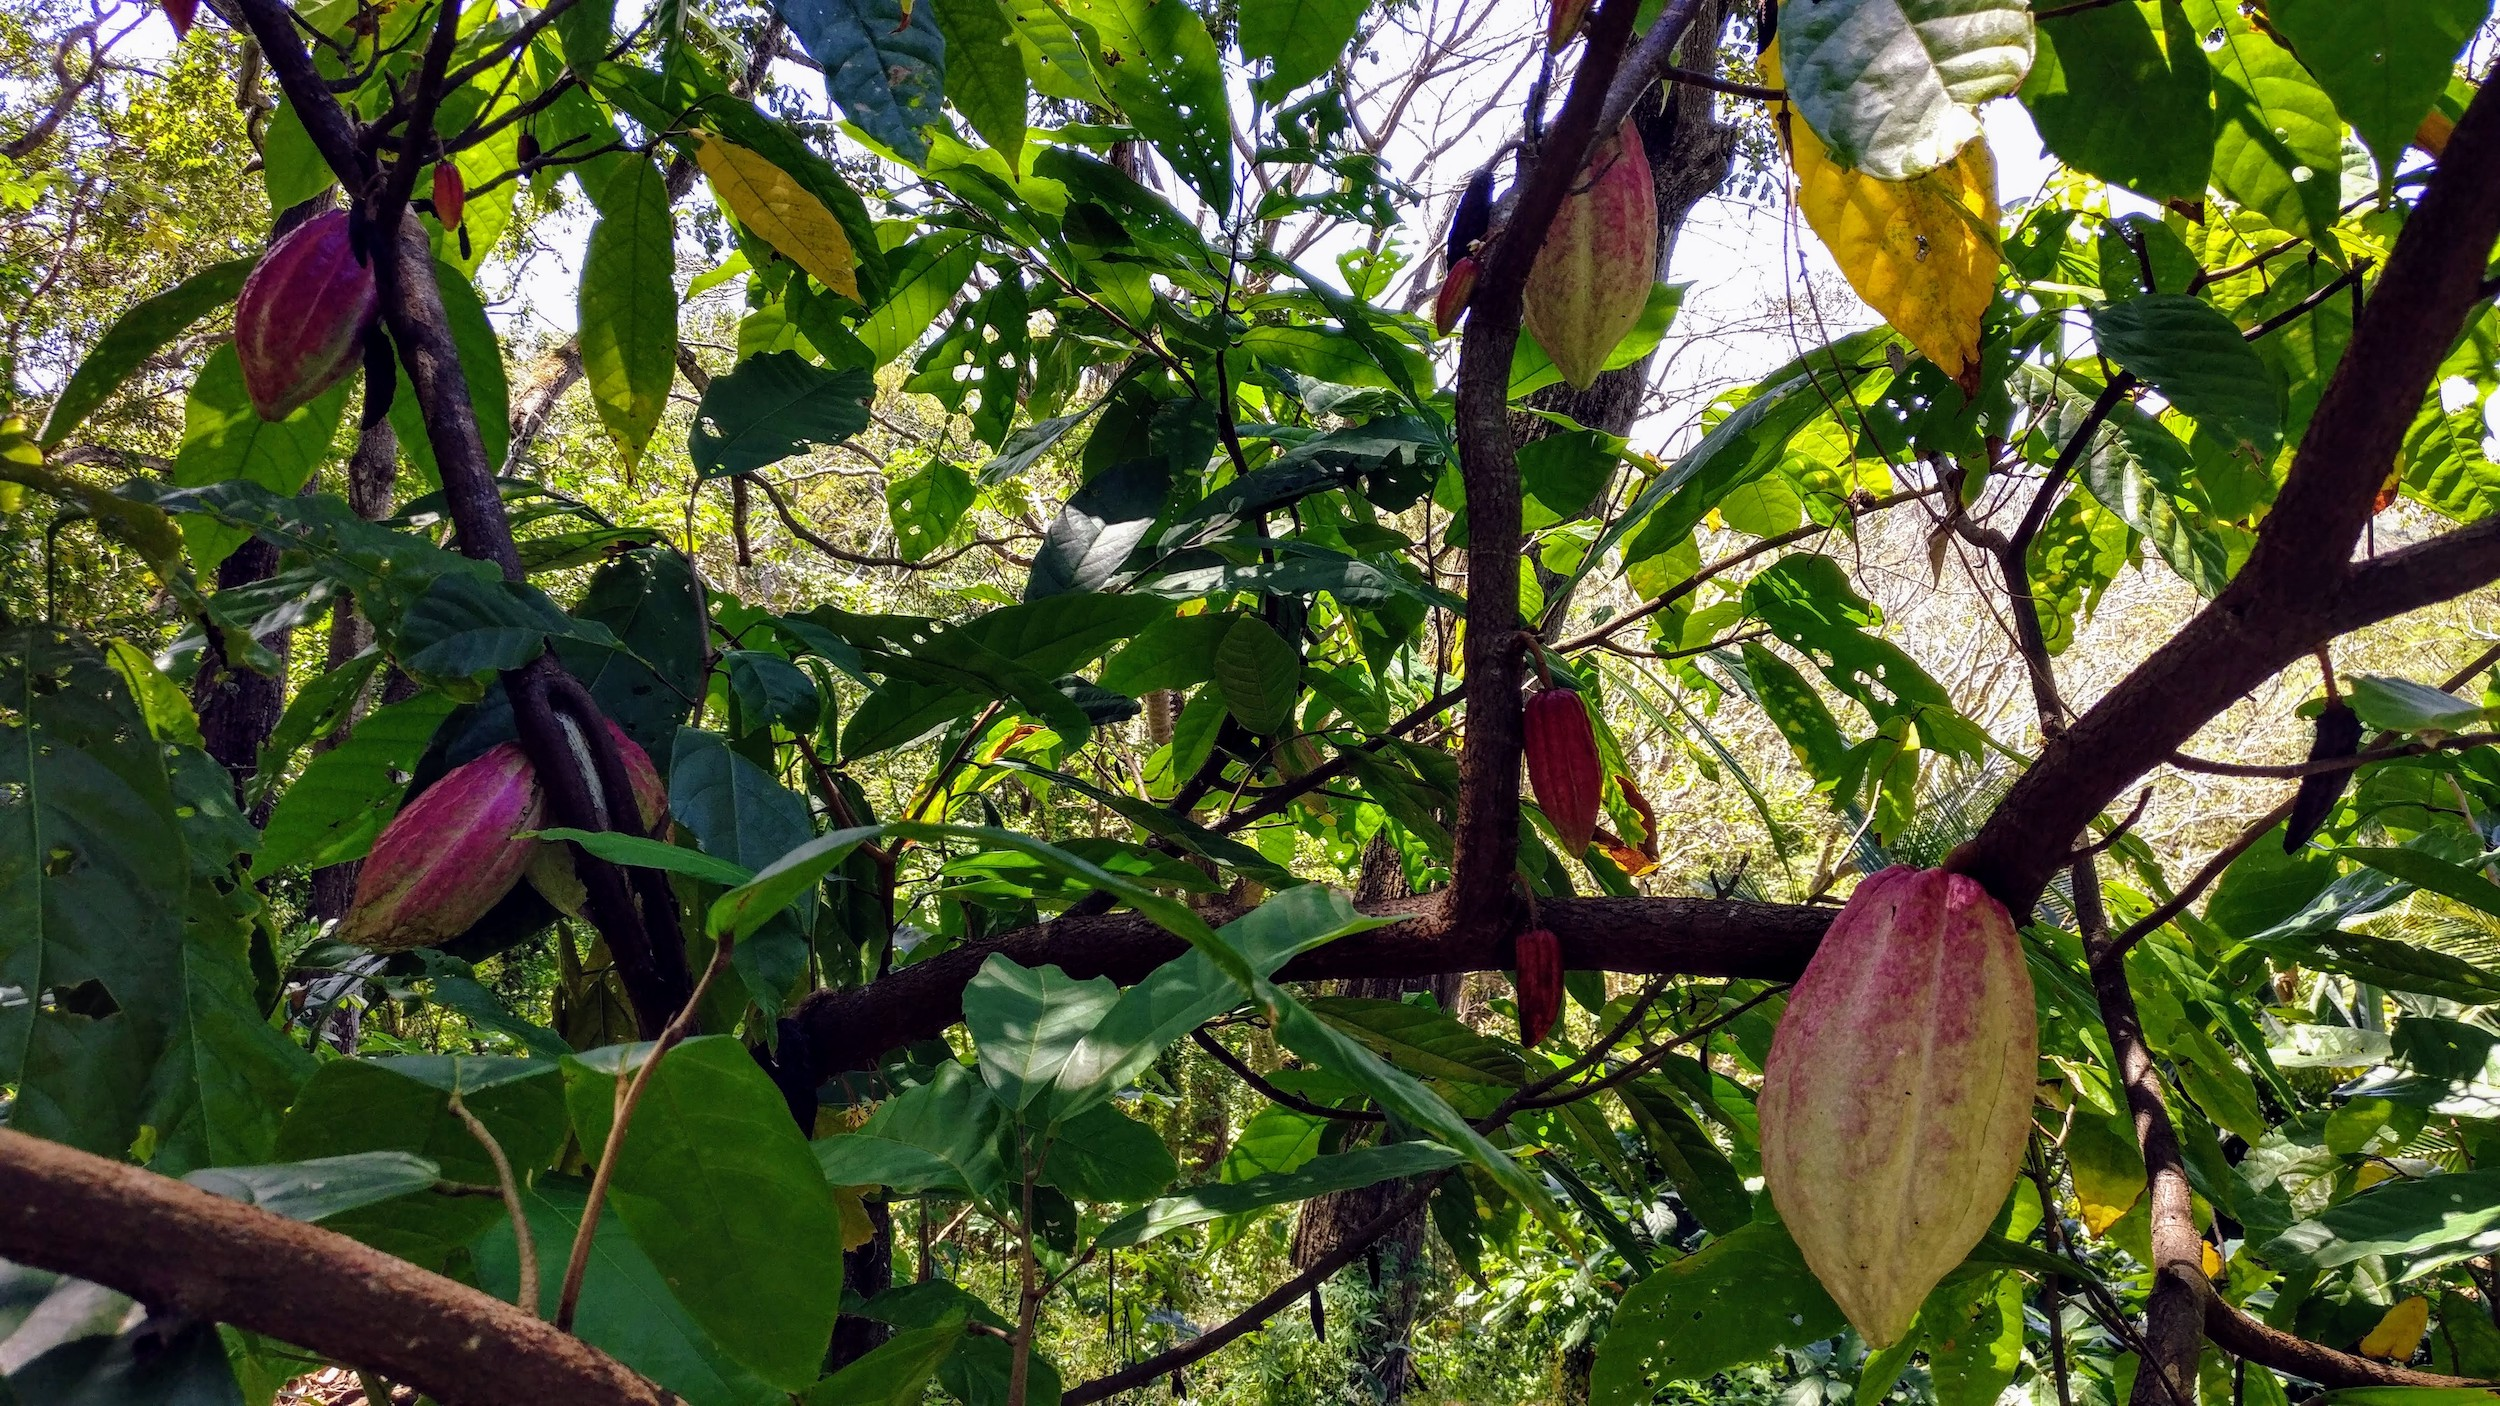 Criollo cacao pods growing around us at InanItah, Isla de Ometepe.